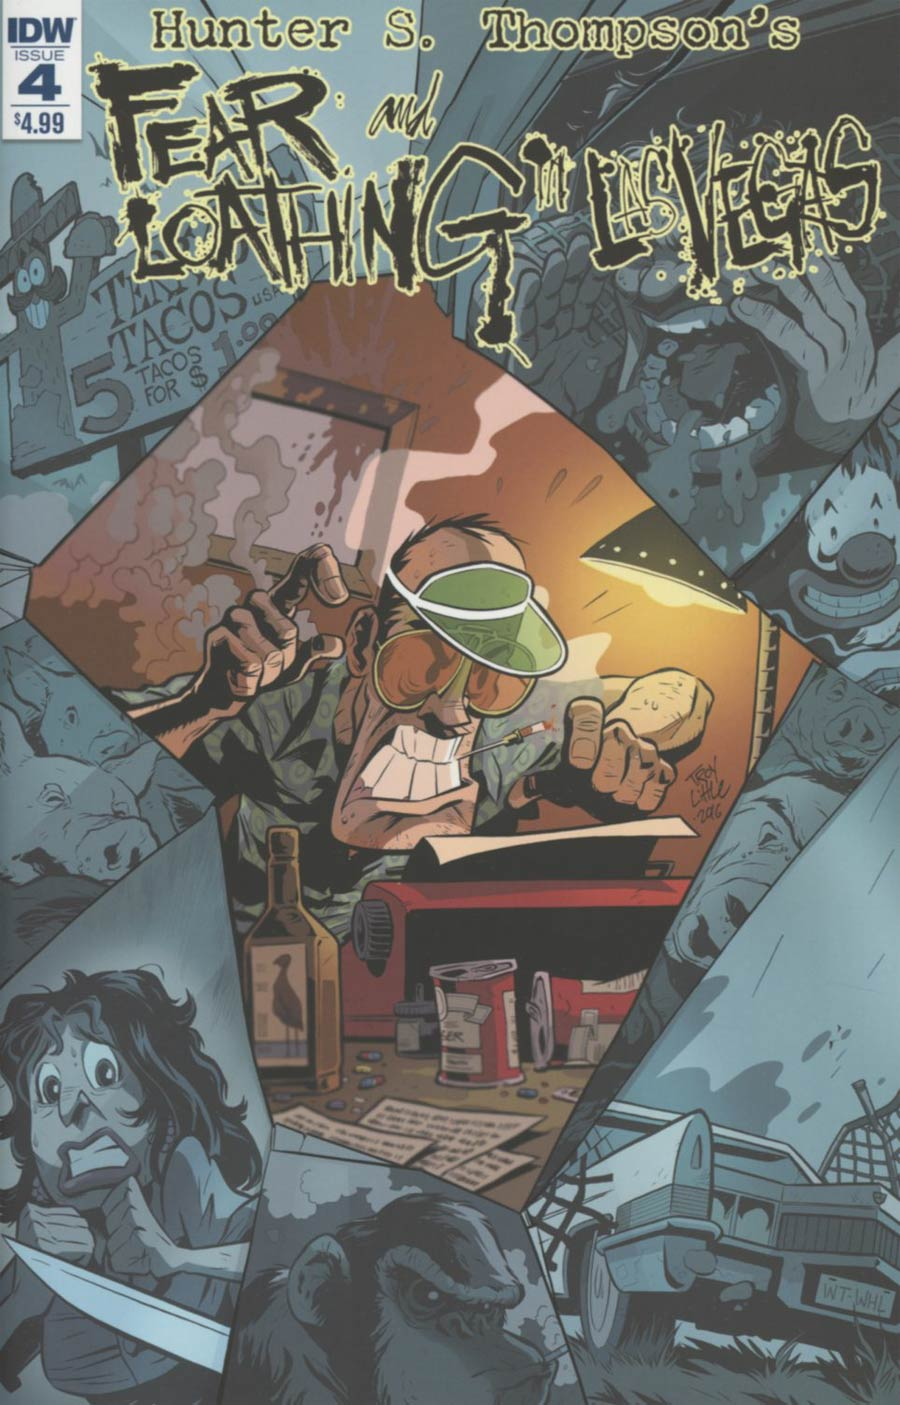 Hunter S Thompsons Fear And Loathing In Las Vegas #4 Cover A Regular Troy Little Cover